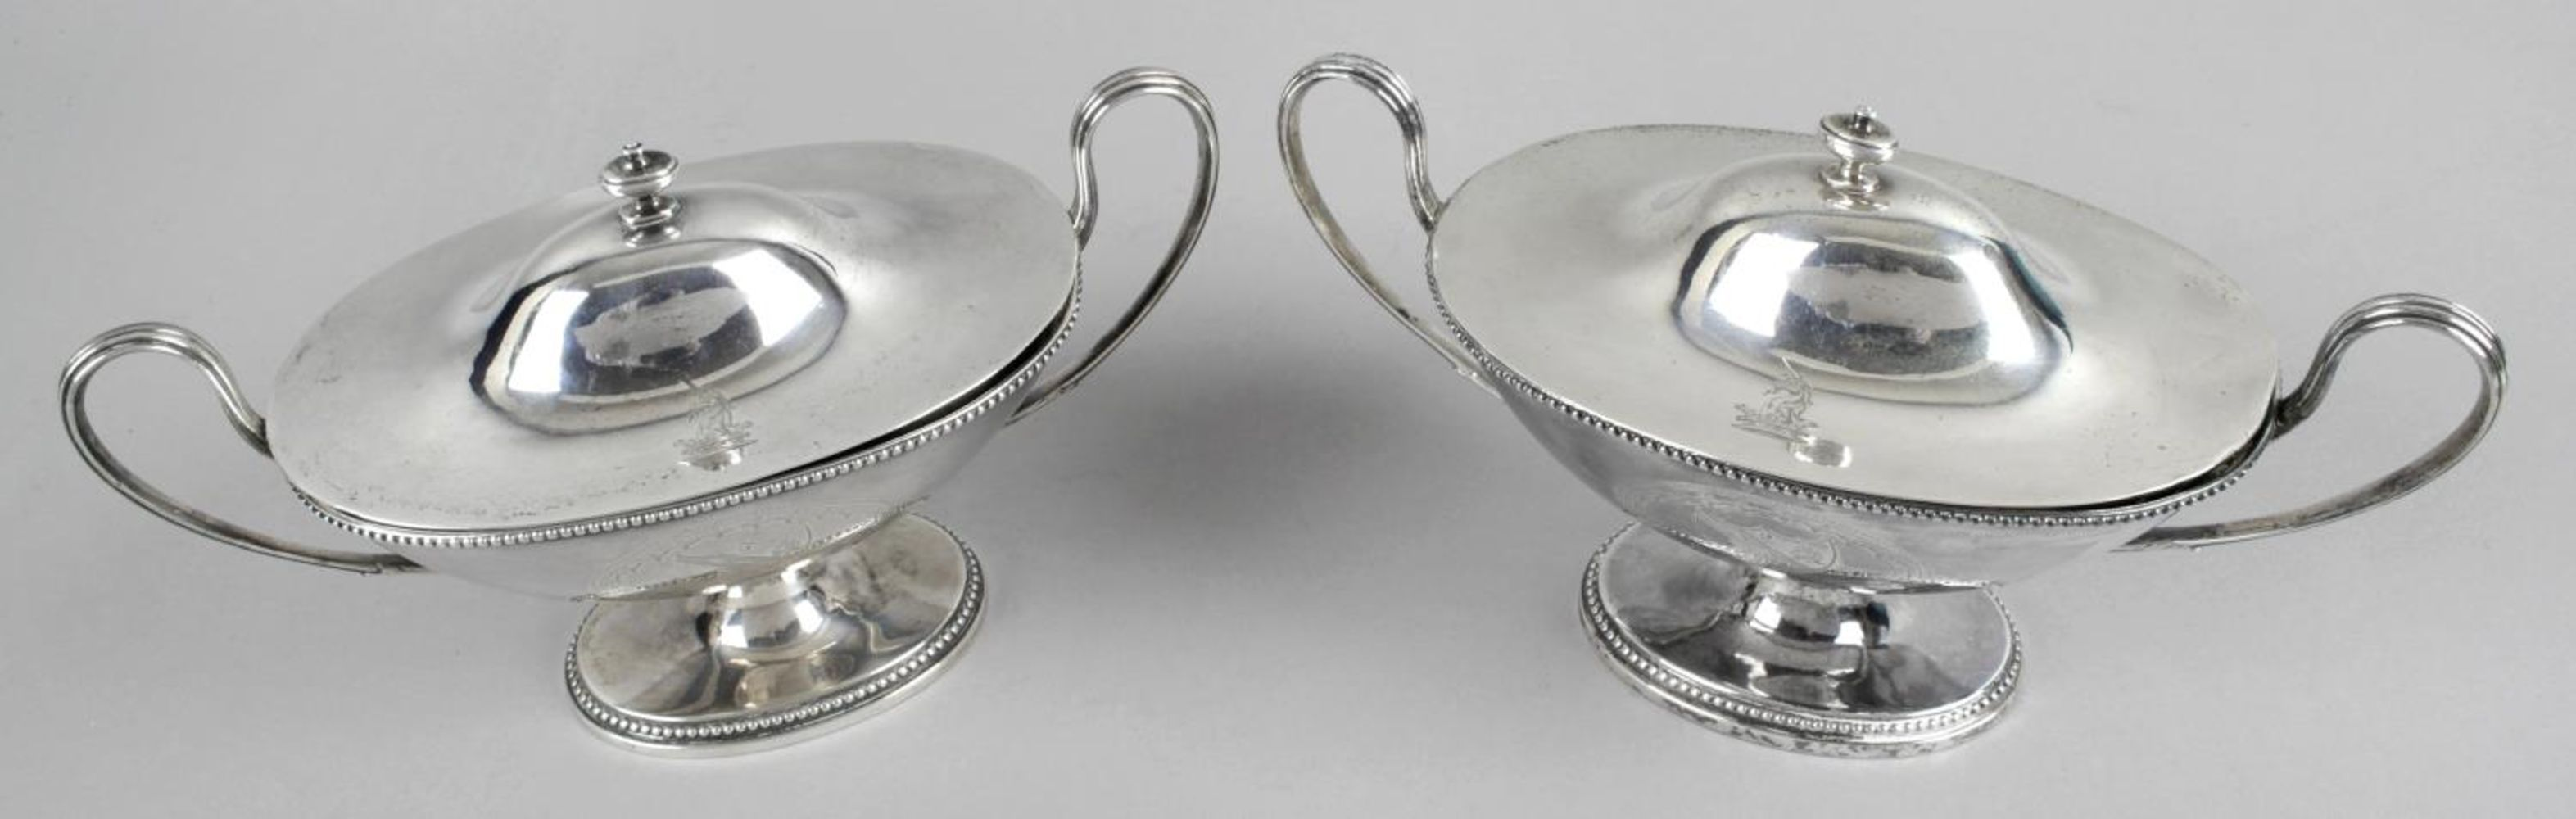 Antiques, Silver & Collectables